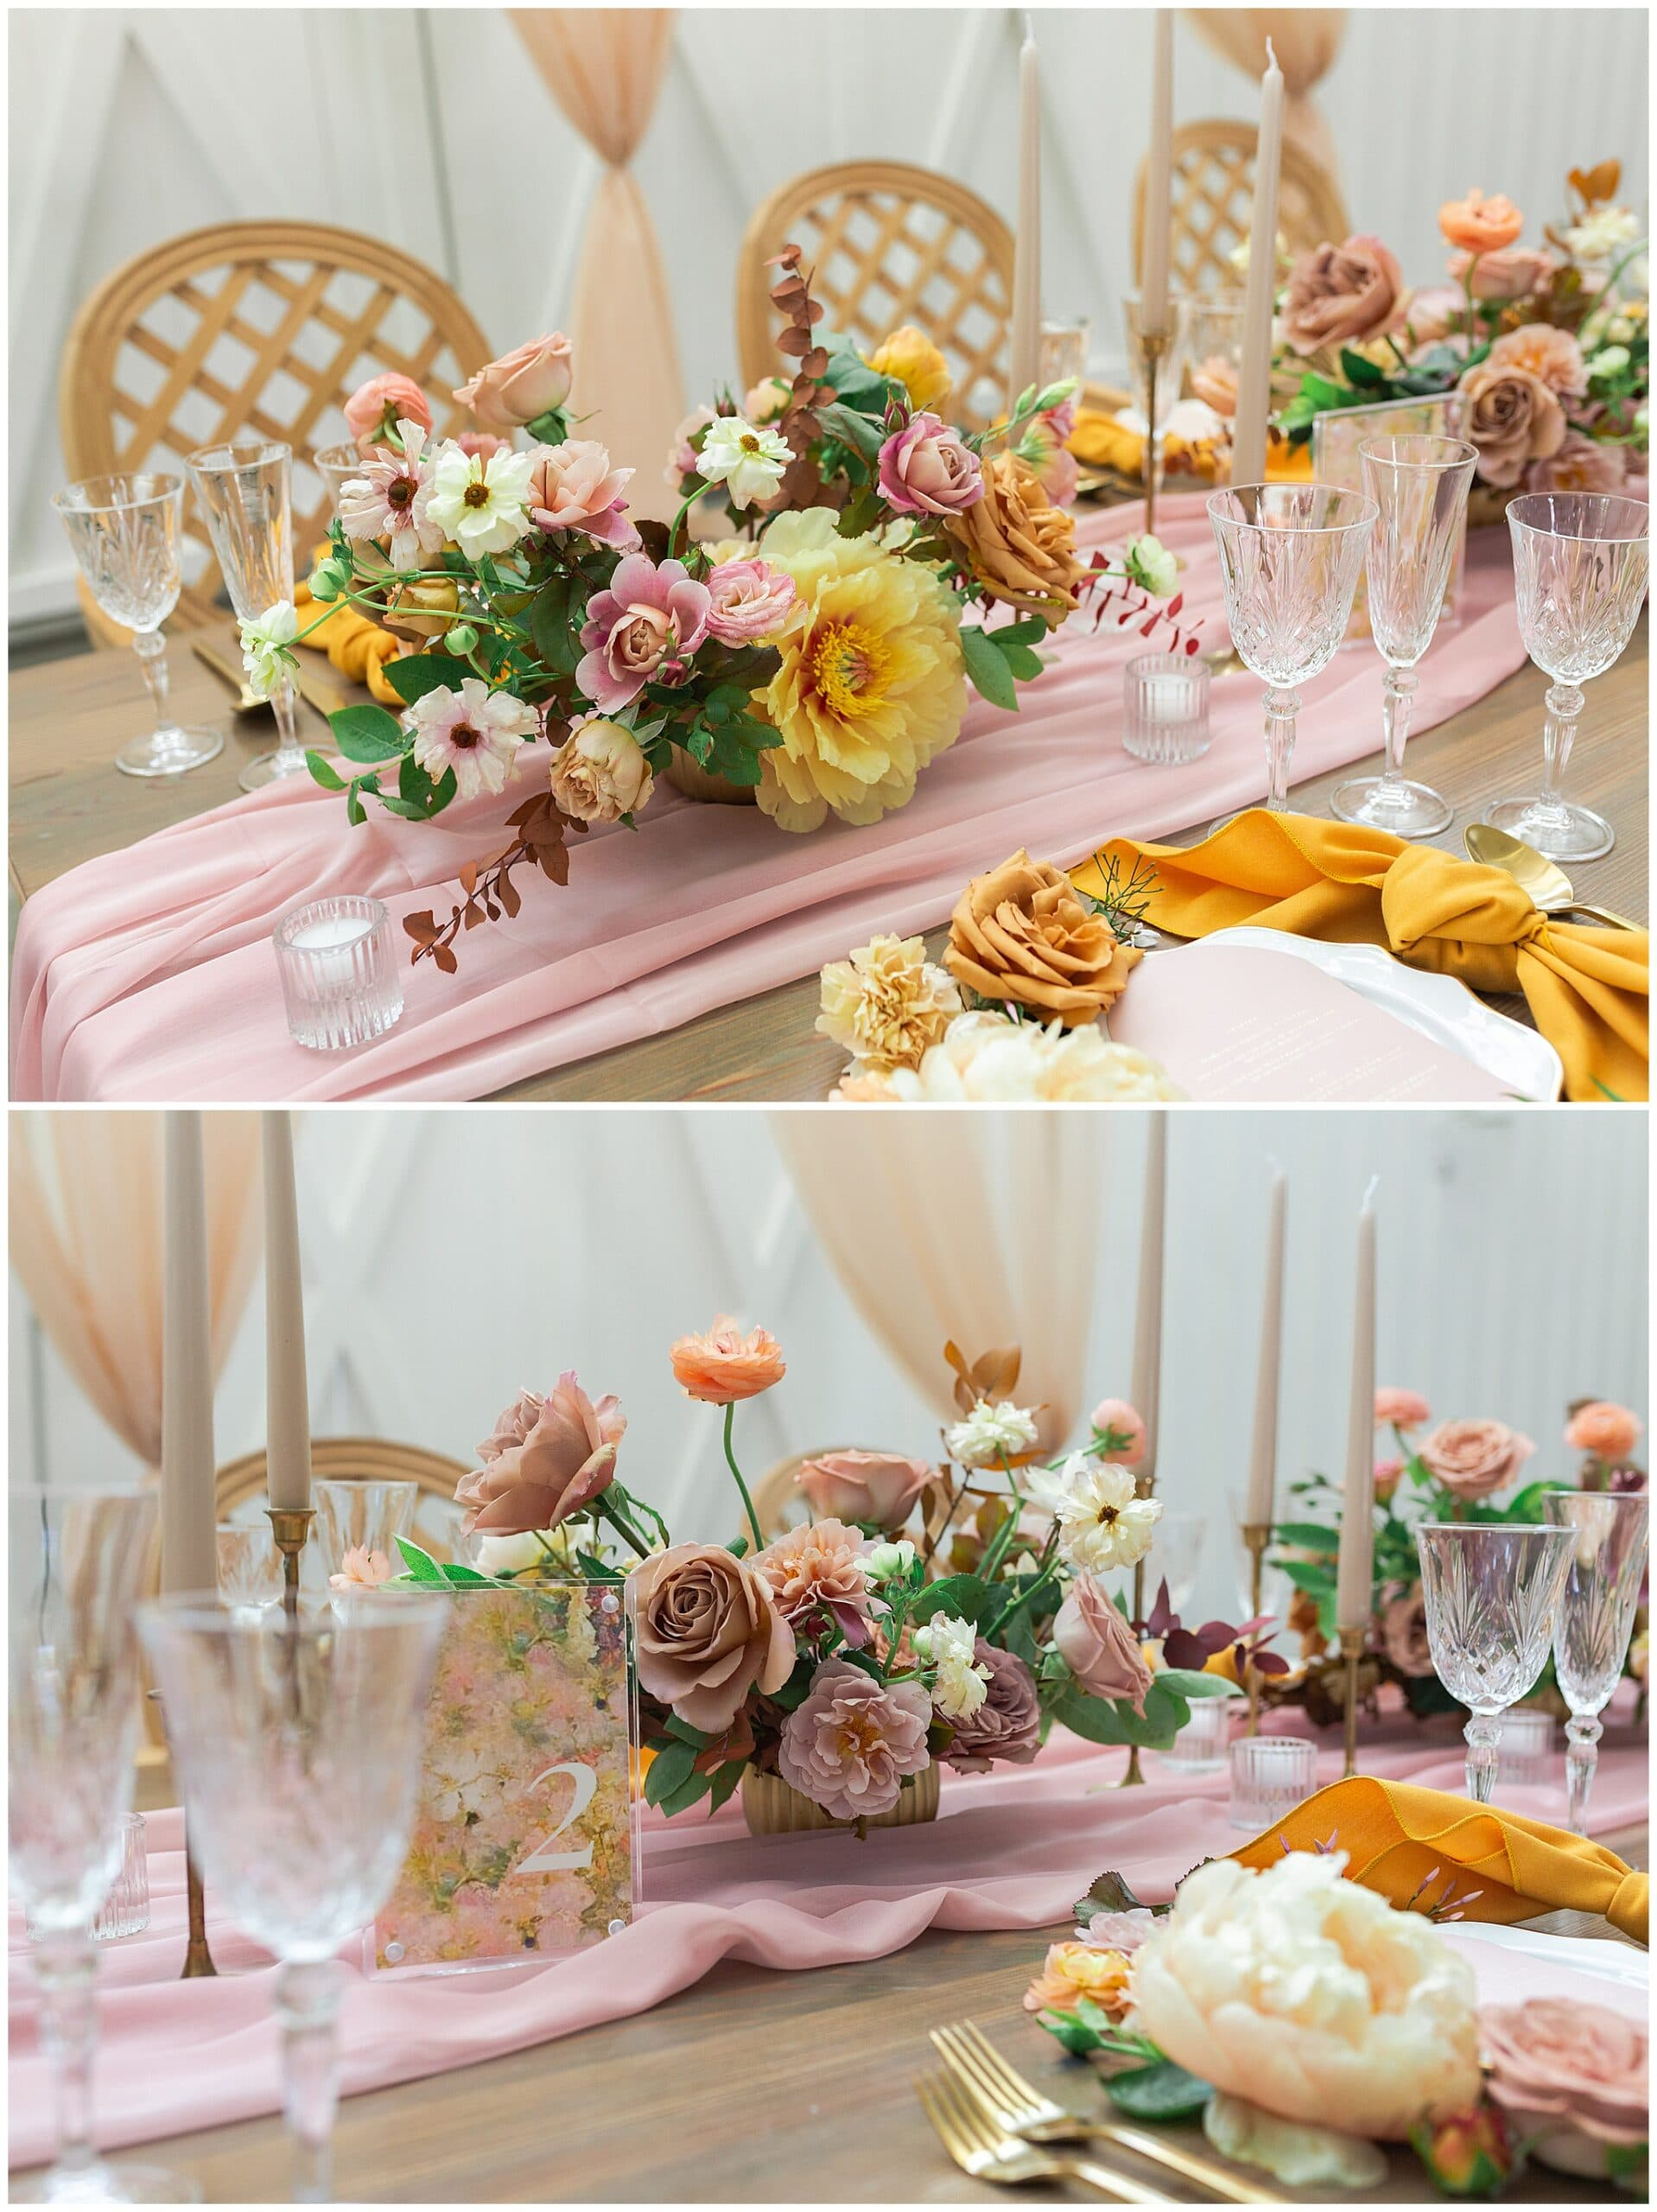 table setting with blush and yellow tones at The Farmhouse in Montgomery TX captured by Swish and Click Photography